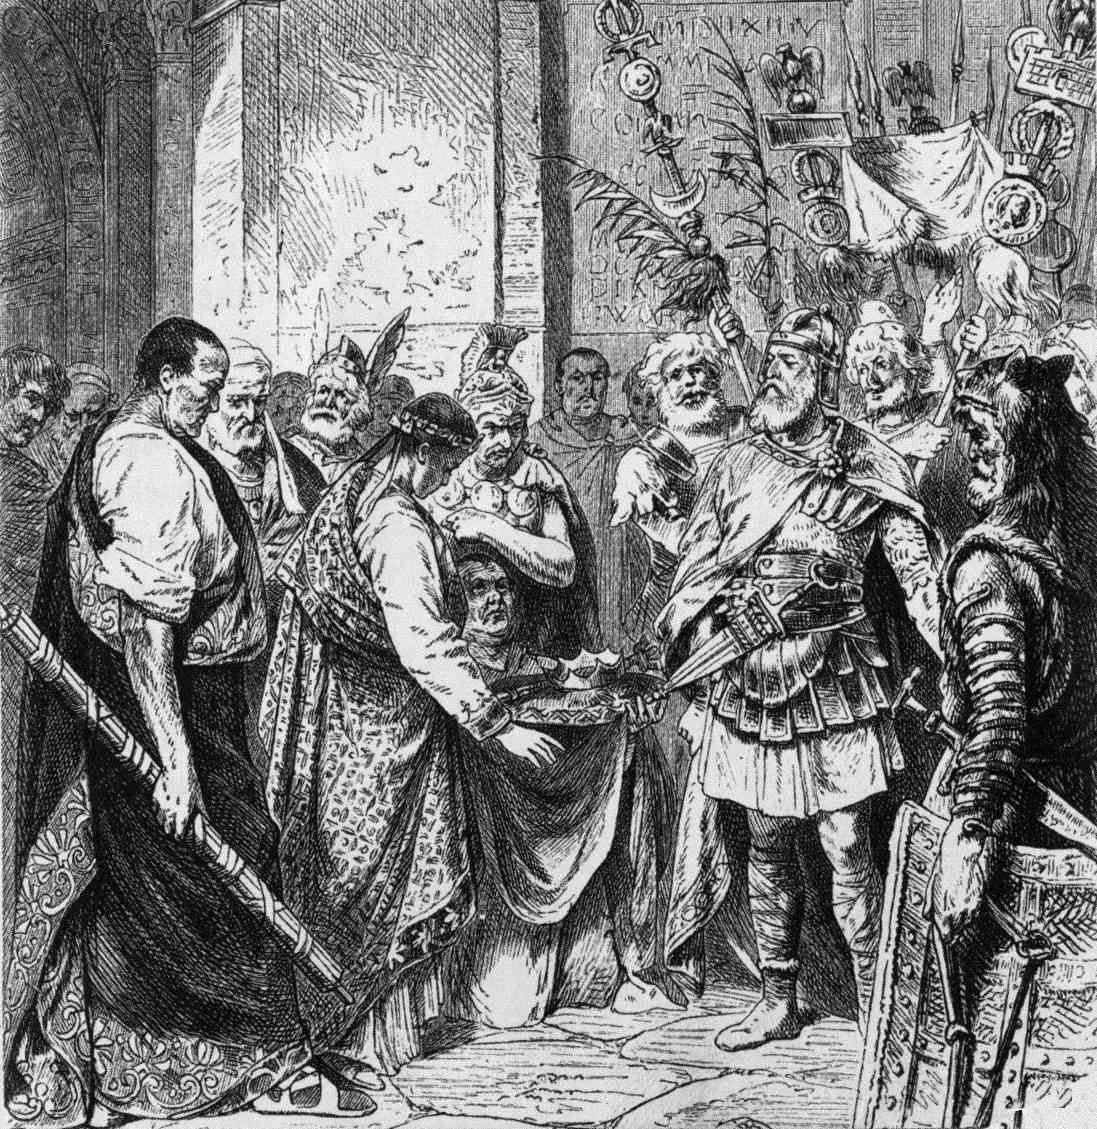 Romulus Augustulus resigns the Roman crown to Odoacer